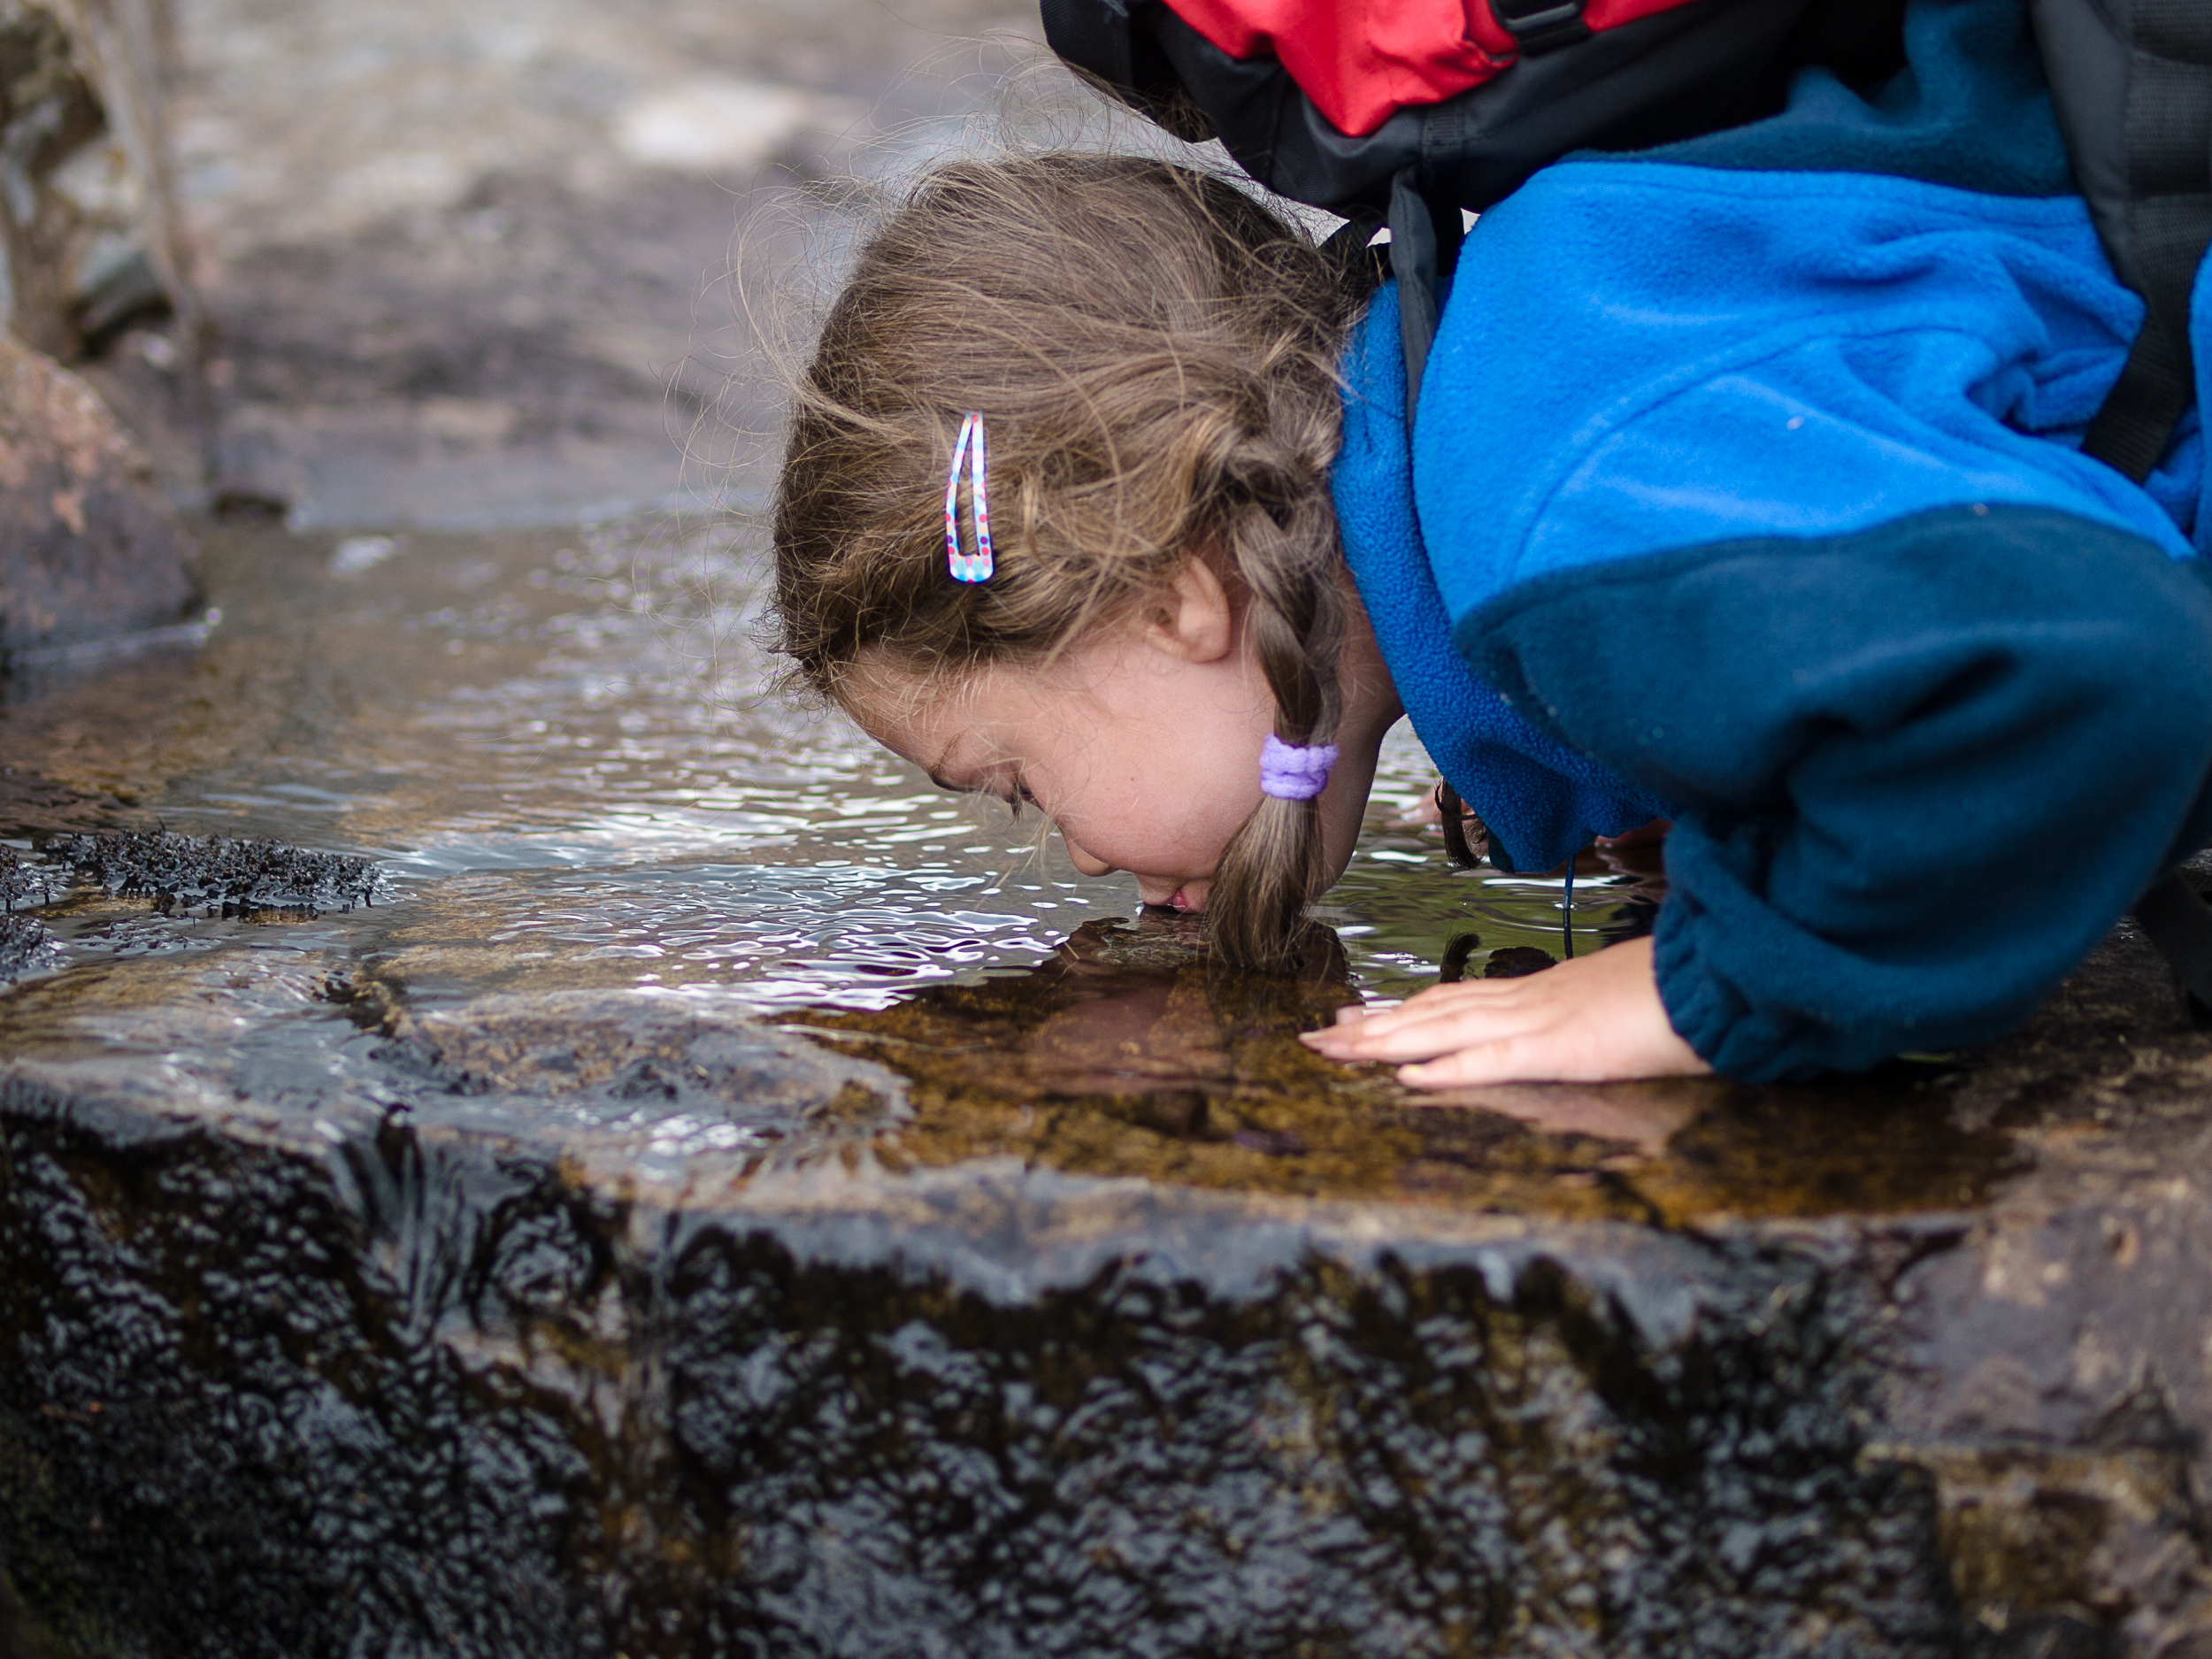 Girl drinking water from the stream